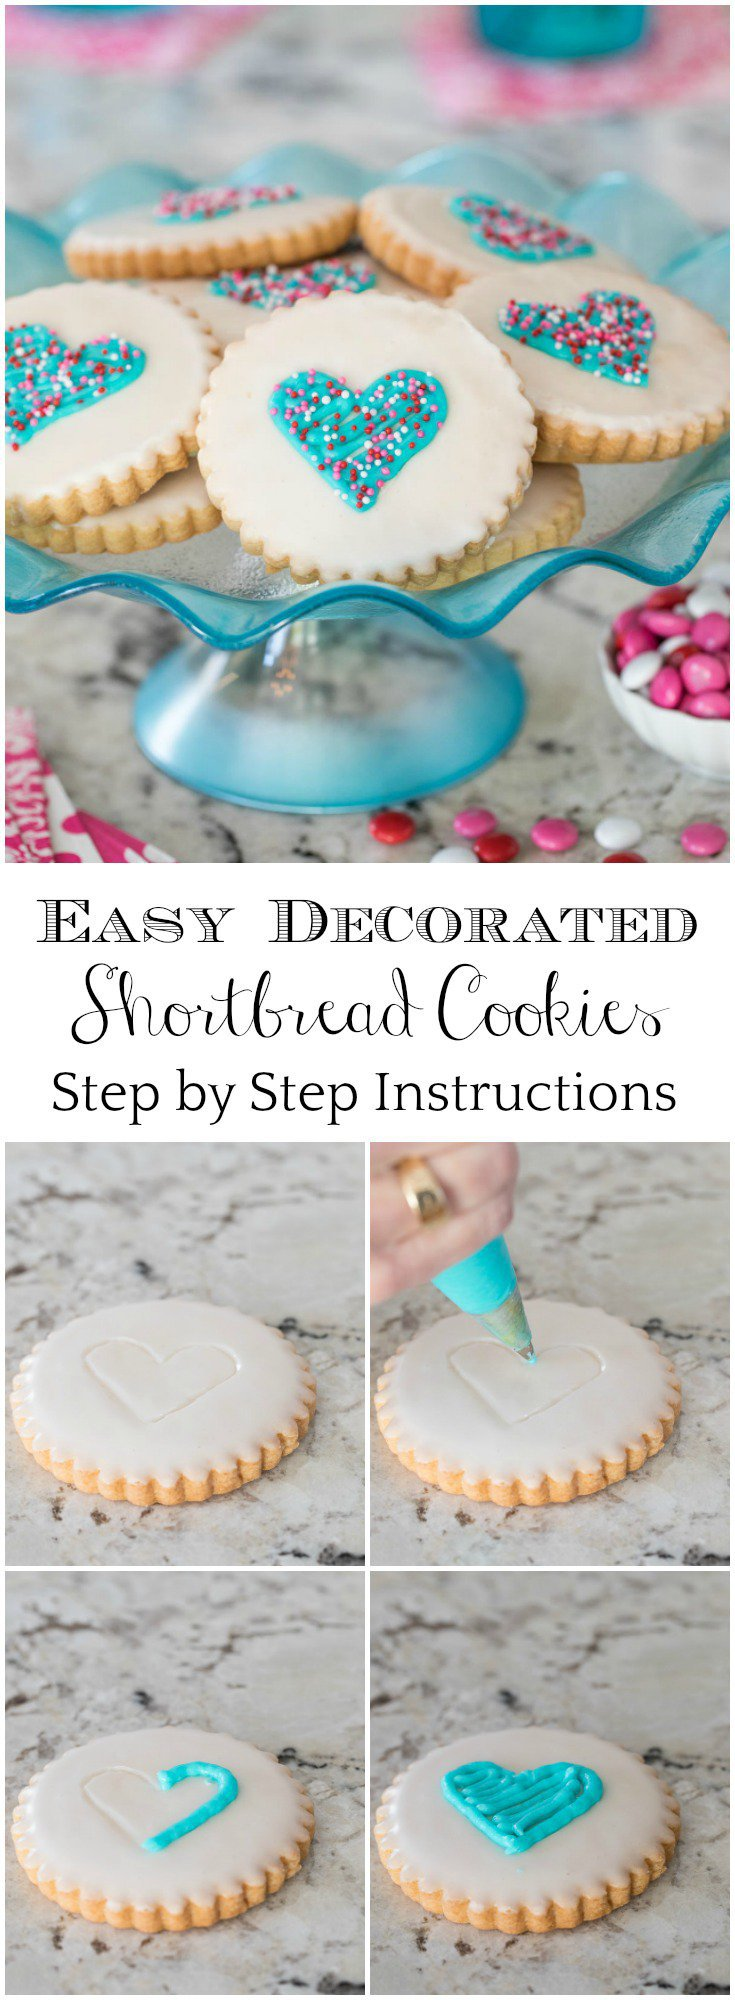 These delicious, Easy Decorated Shortbread Cookies are showstoppers - perfect for weddings, Valentinesor just to say I love you!